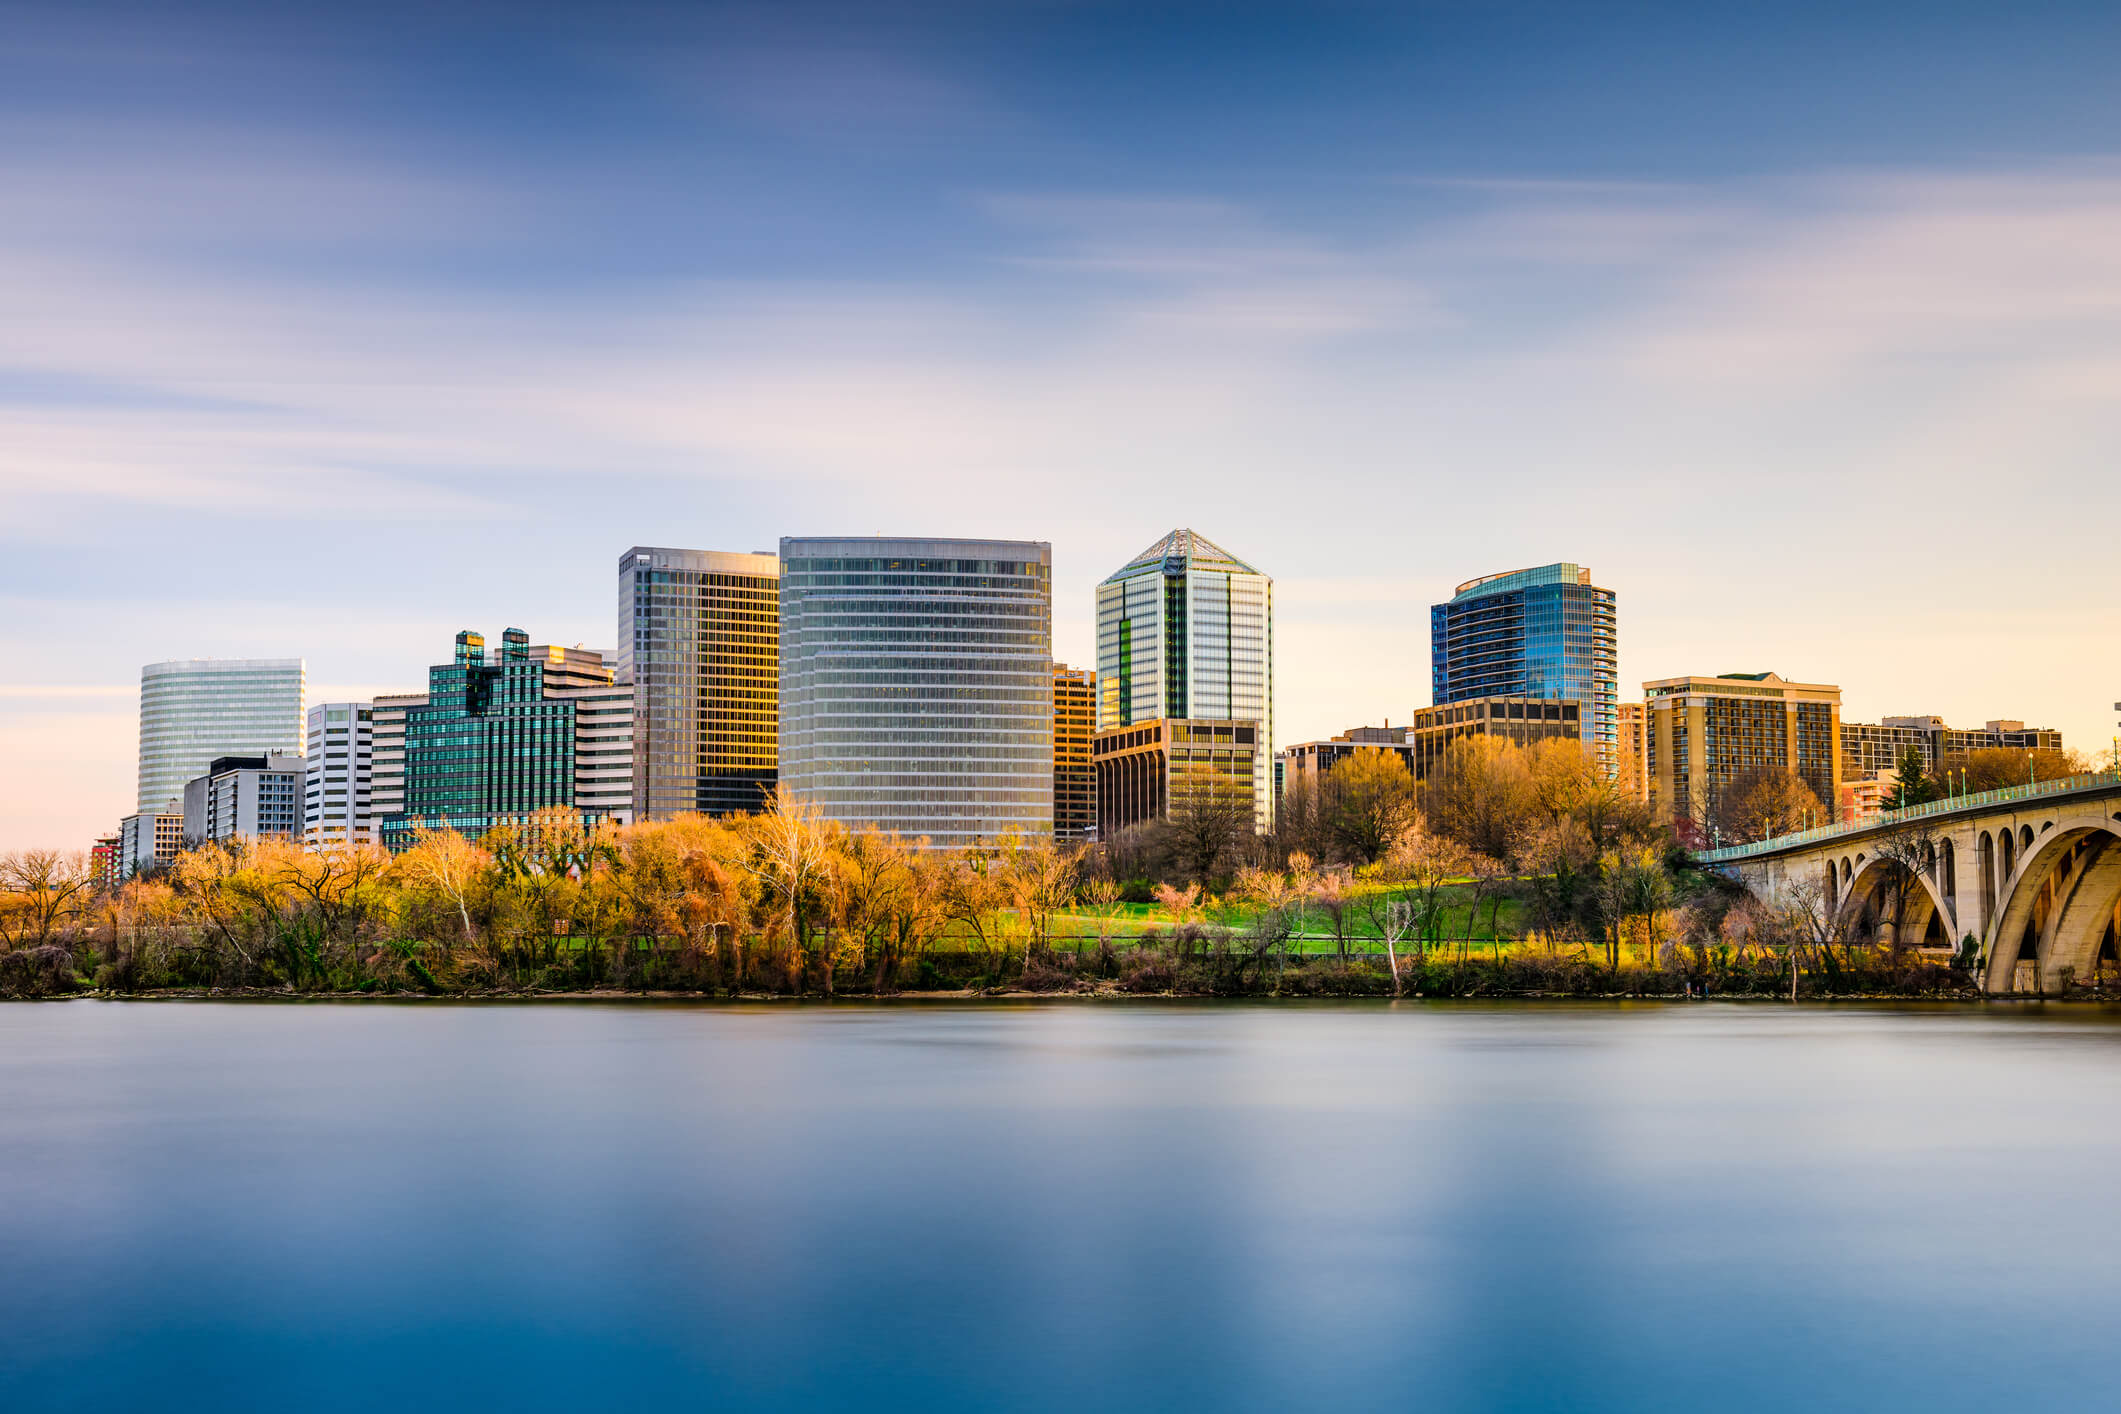 The November announcement of Amazon's HQ2 move to Arlington, Virginia ignites a red hot real estate market with no end in sight.